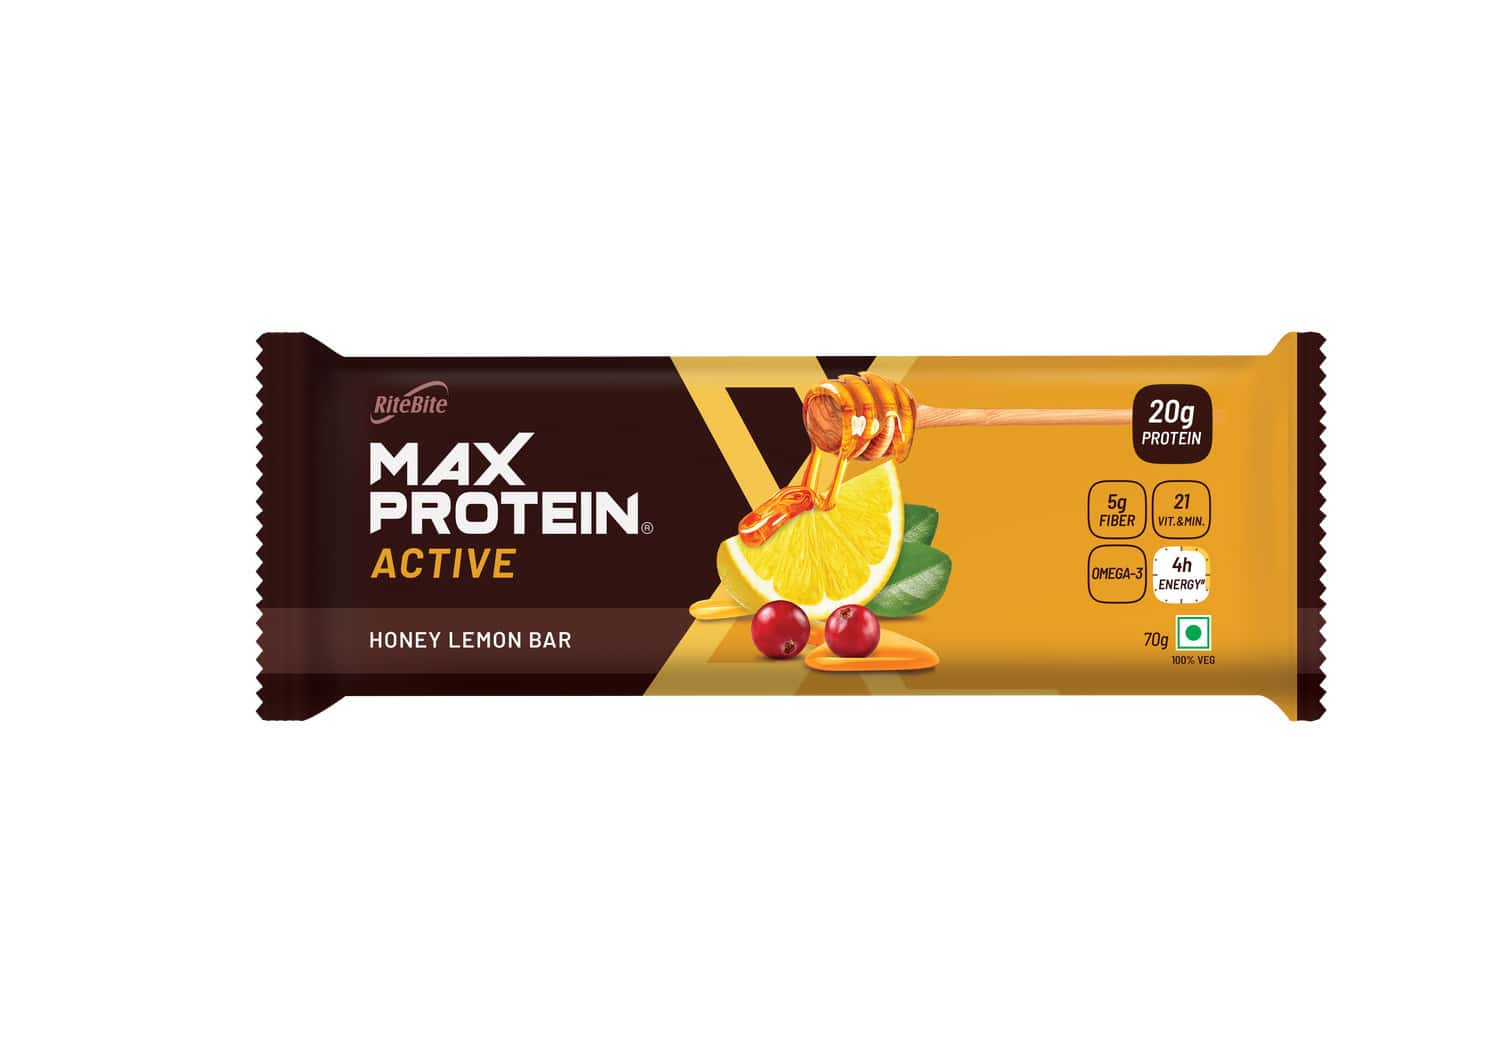 Ritebite Max Protein Active Honey Lemon Nutrition Bar Box Of 210 G